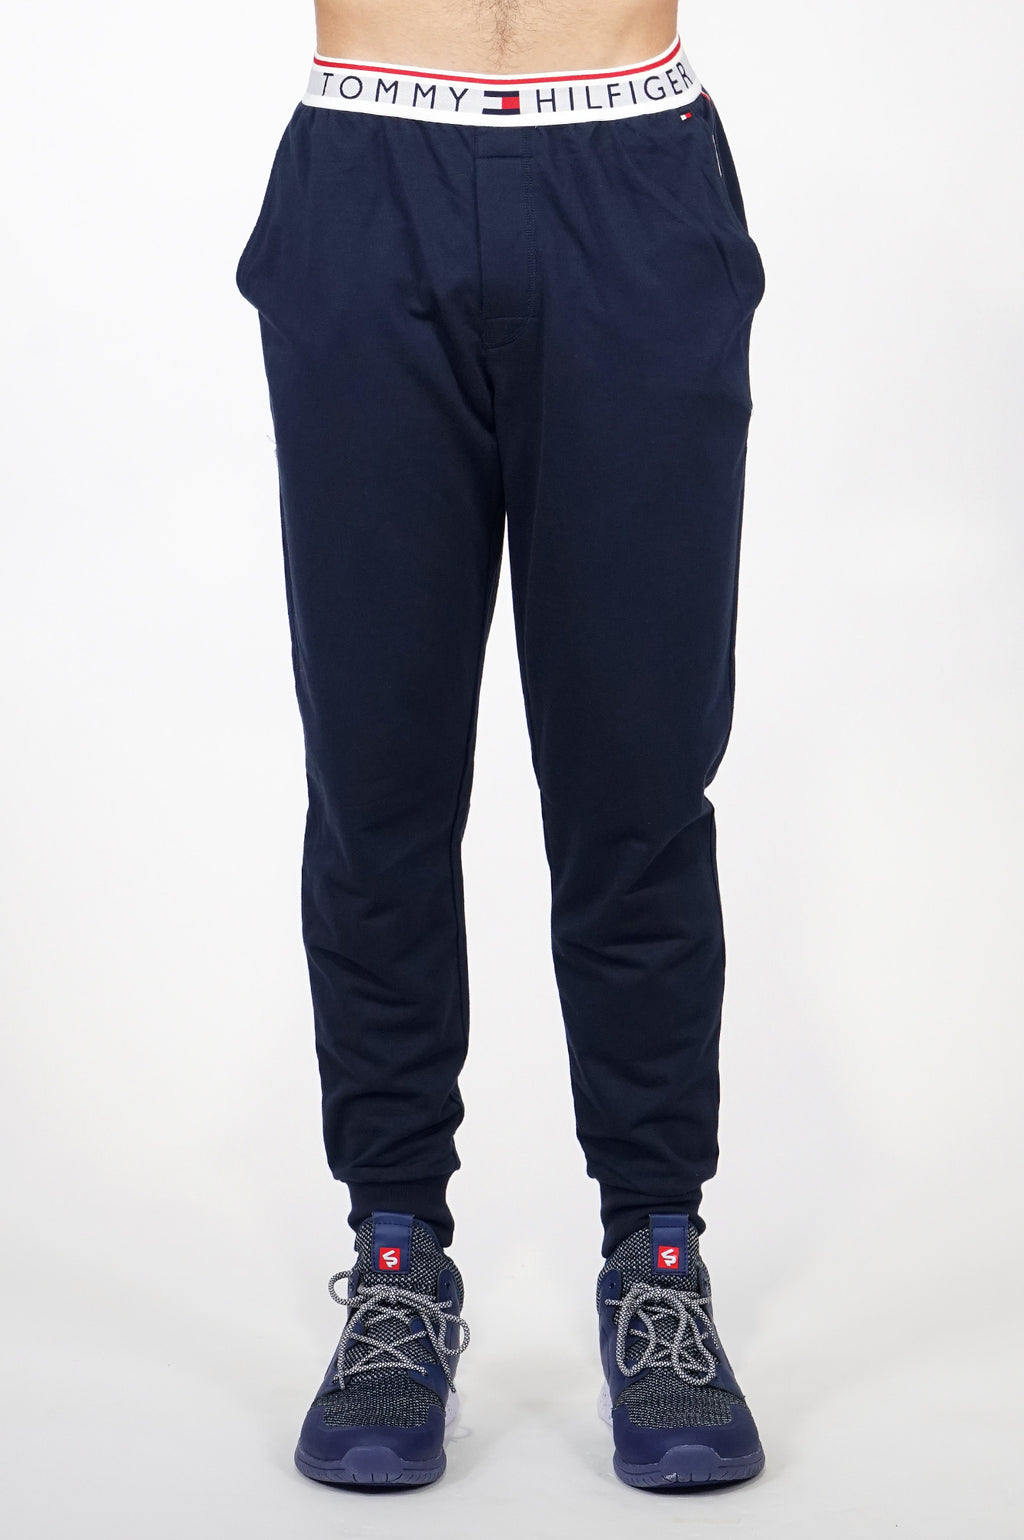 TOMMY HILFIGER LOUNGEWEAR MENS ESSENTIAL PANTS